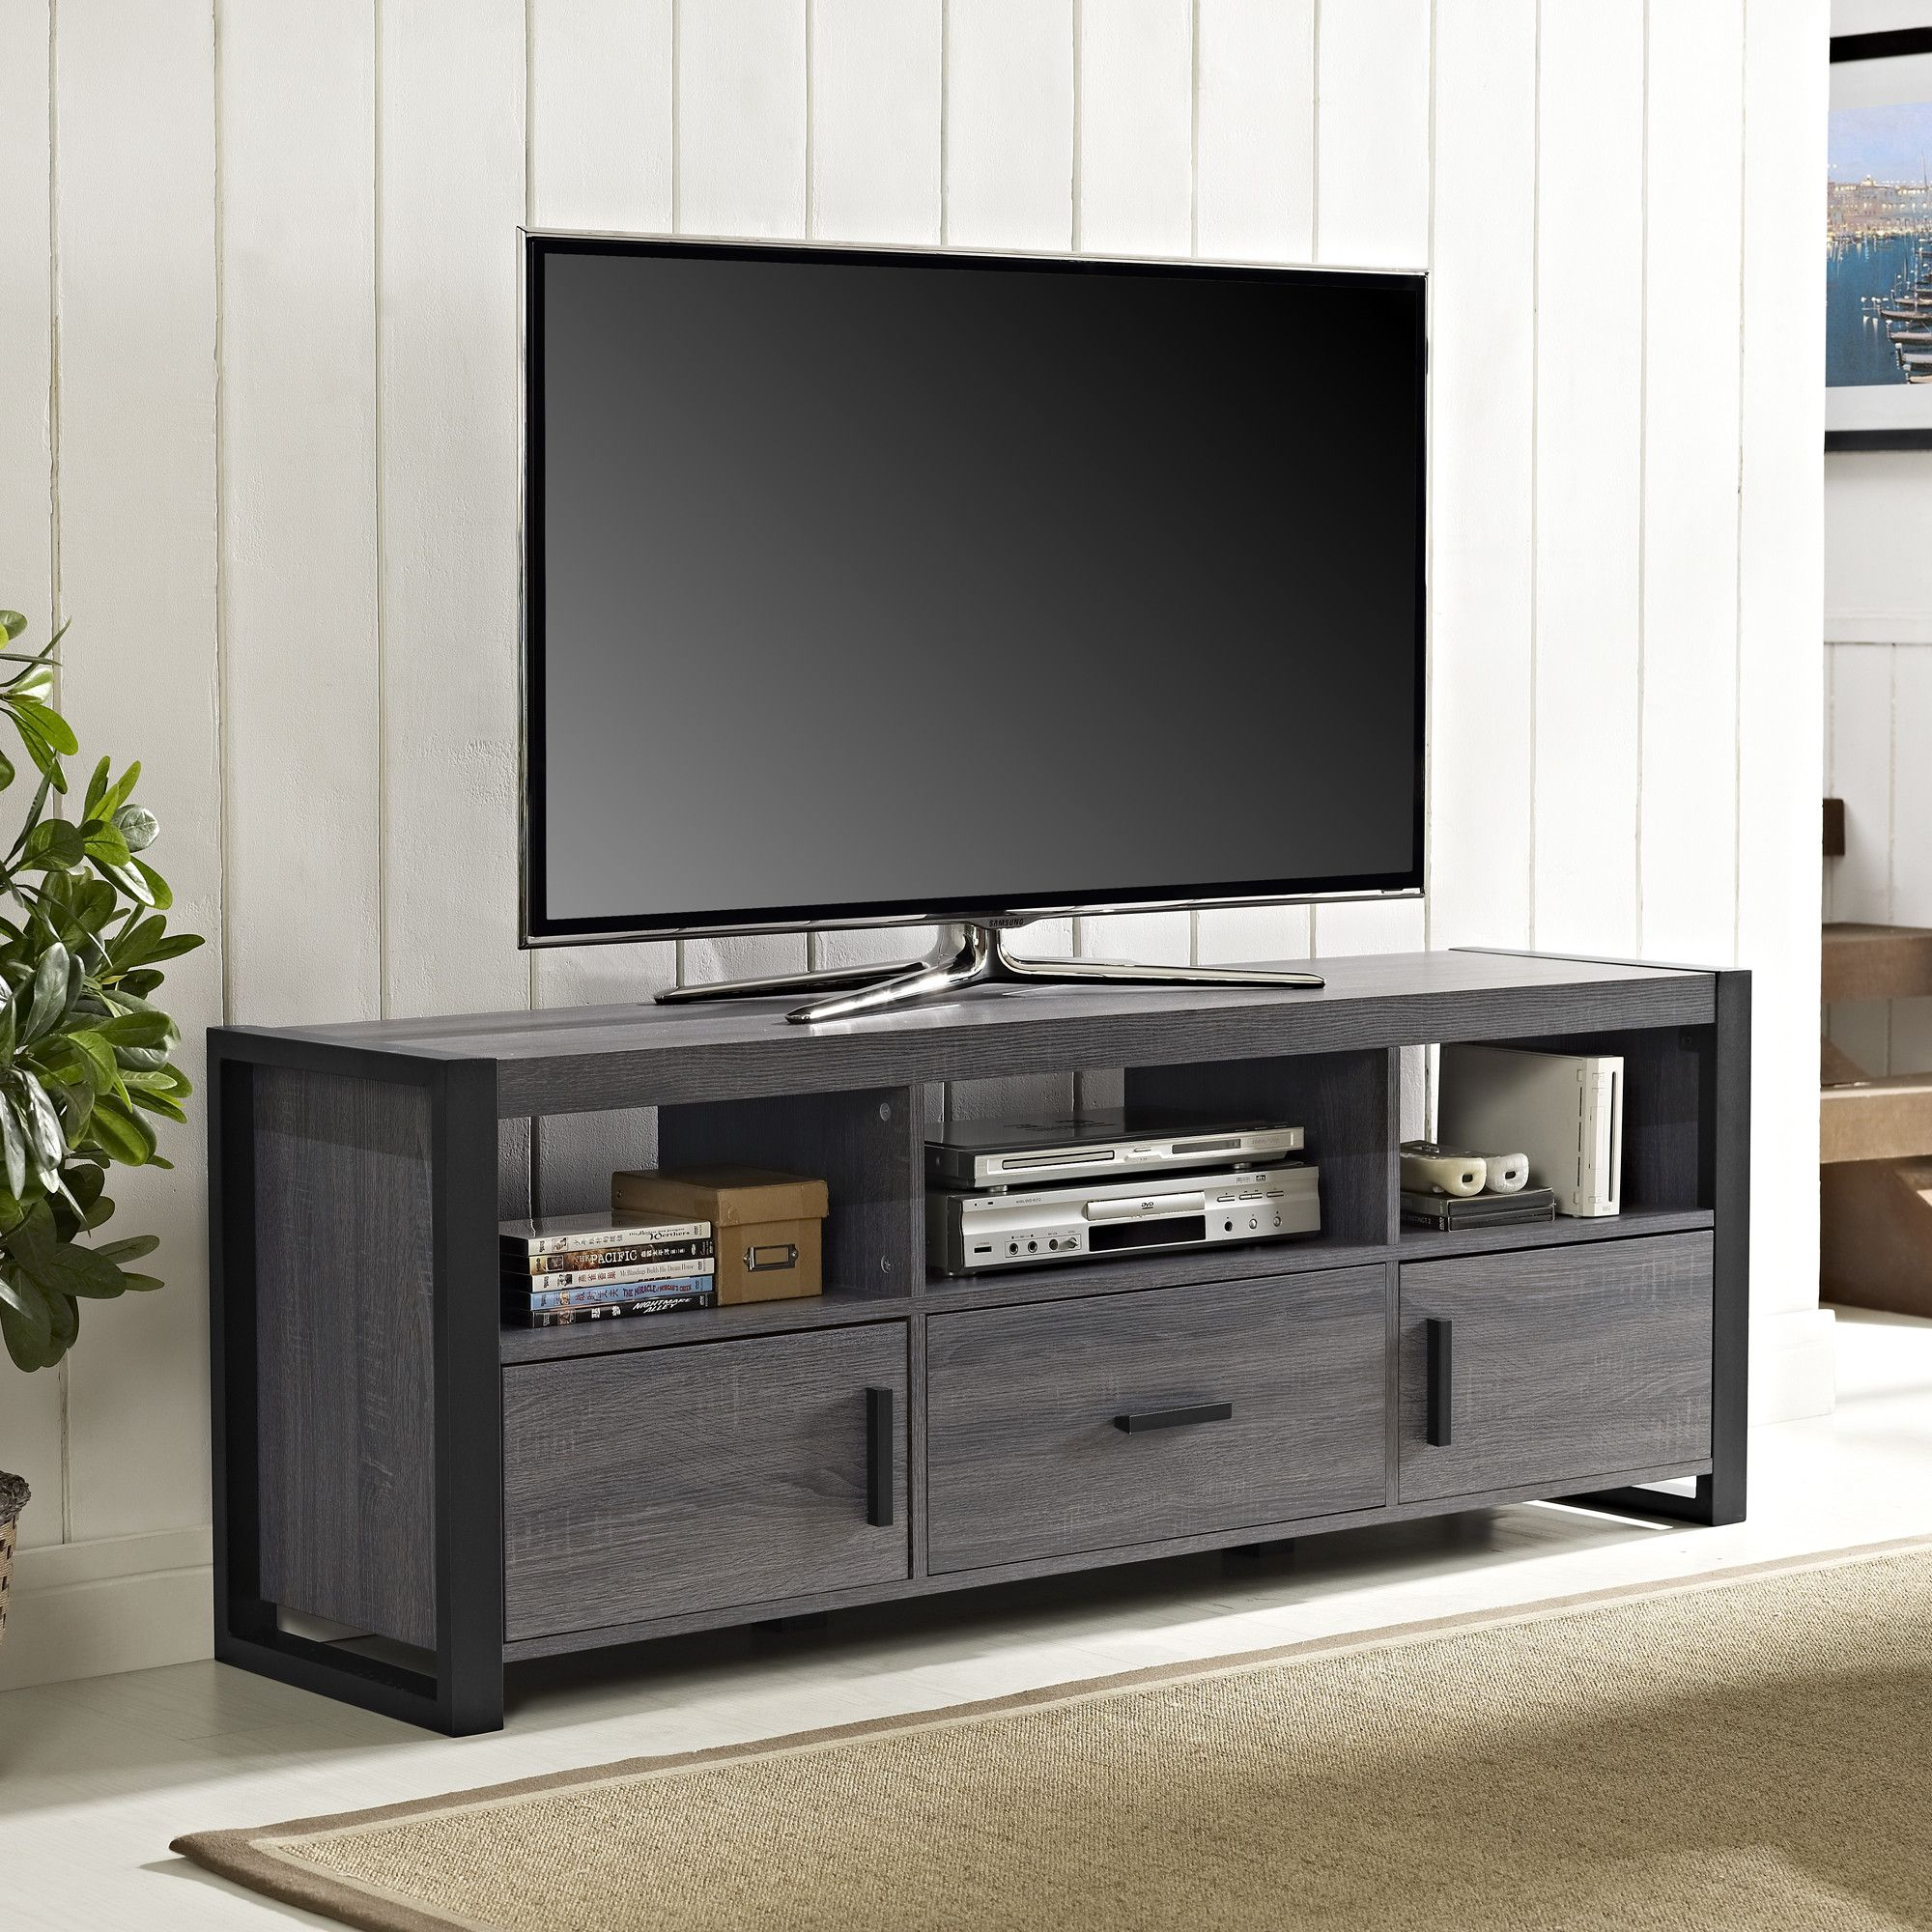 60 tv stand tv stands and playrooms 60 tv stand entertainment centers60 sciox Images